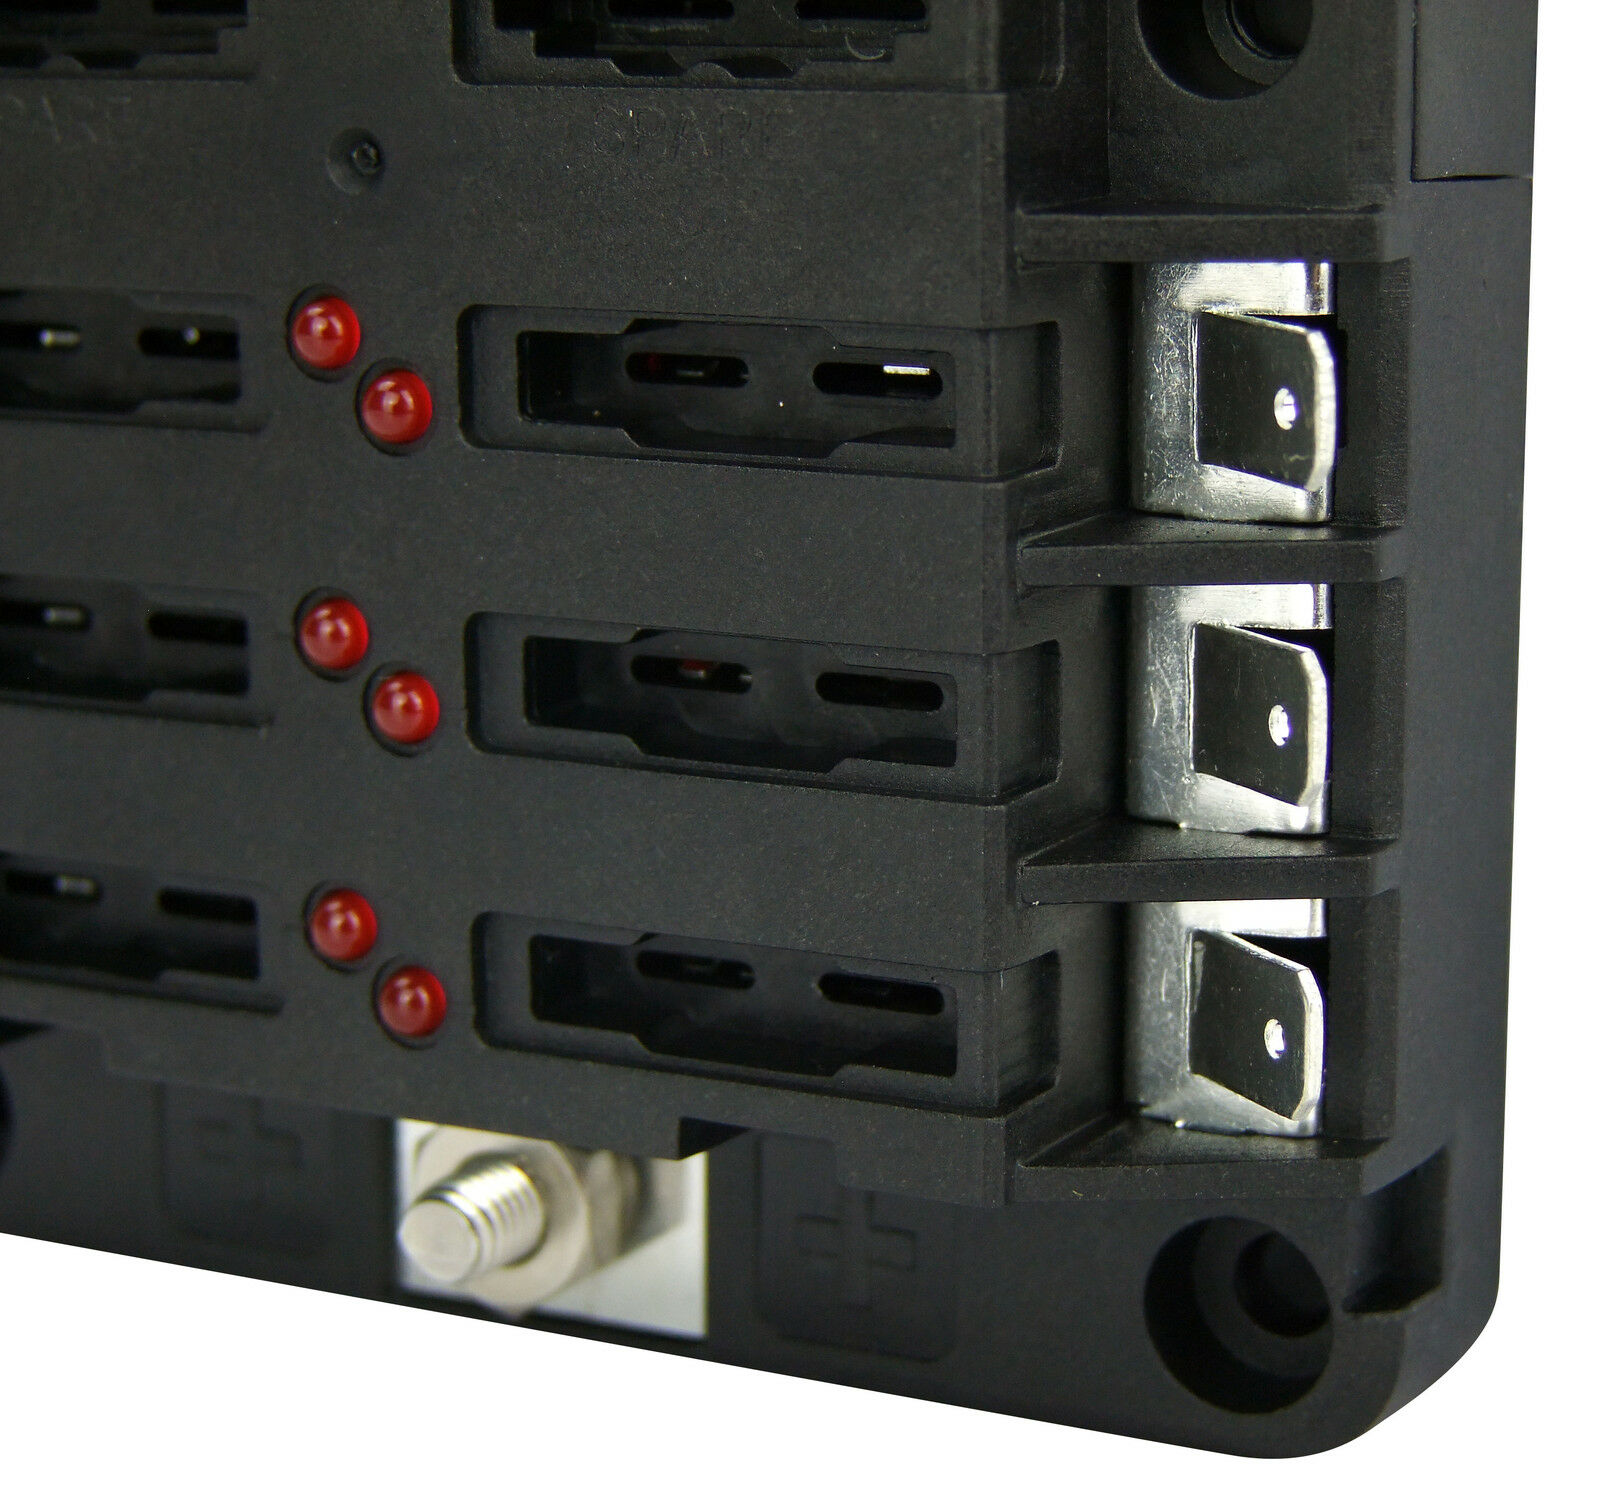 buss bar 12 way with 6 circuit fuse box modular kit 12v. Black Bedroom Furniture Sets. Home Design Ideas